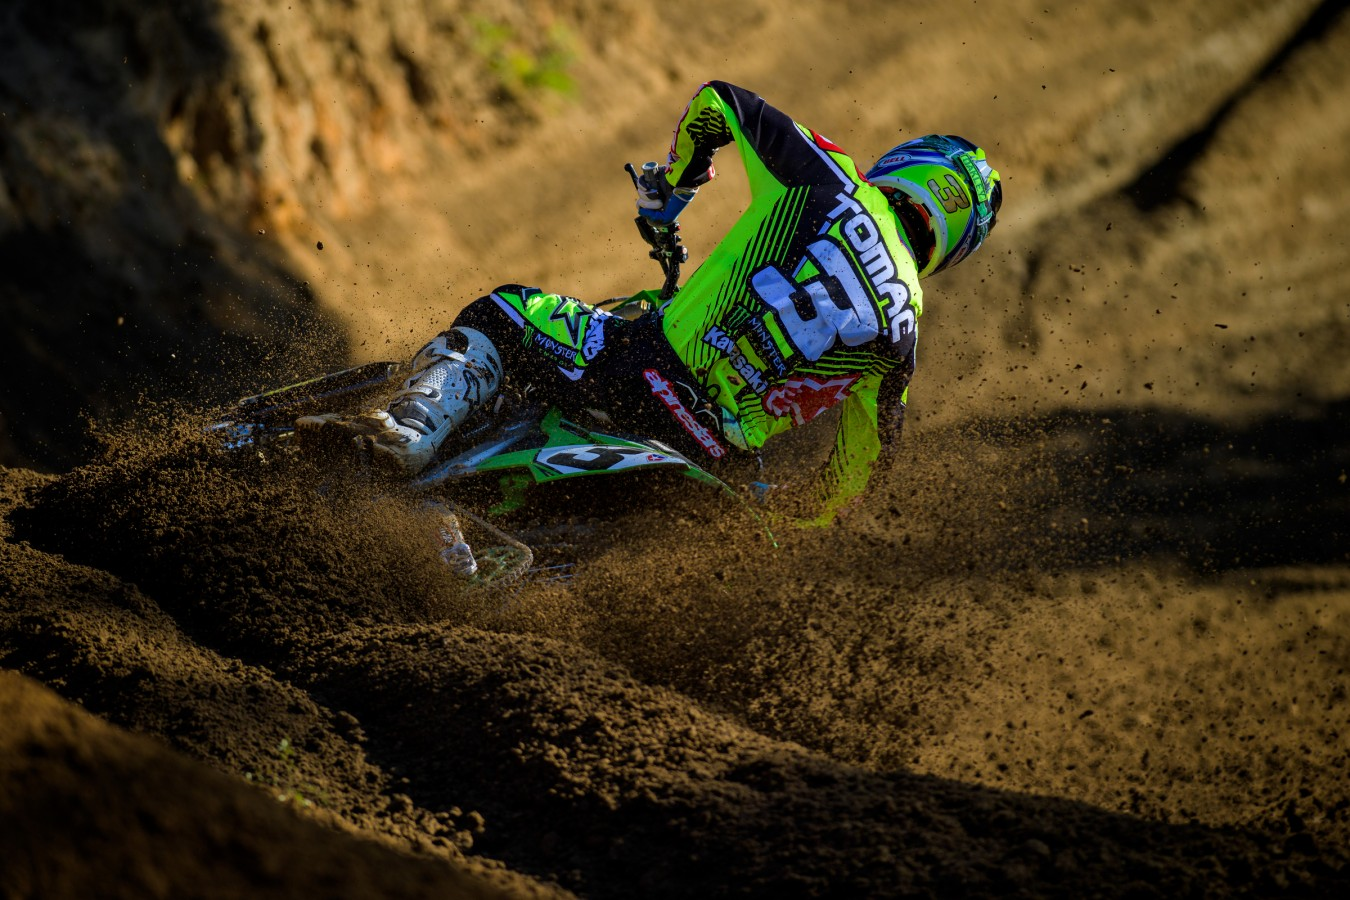 Eli Tomac during the 2016 Pro MX Nationals in Budds Creek Raceway - Mechanicsville, MD